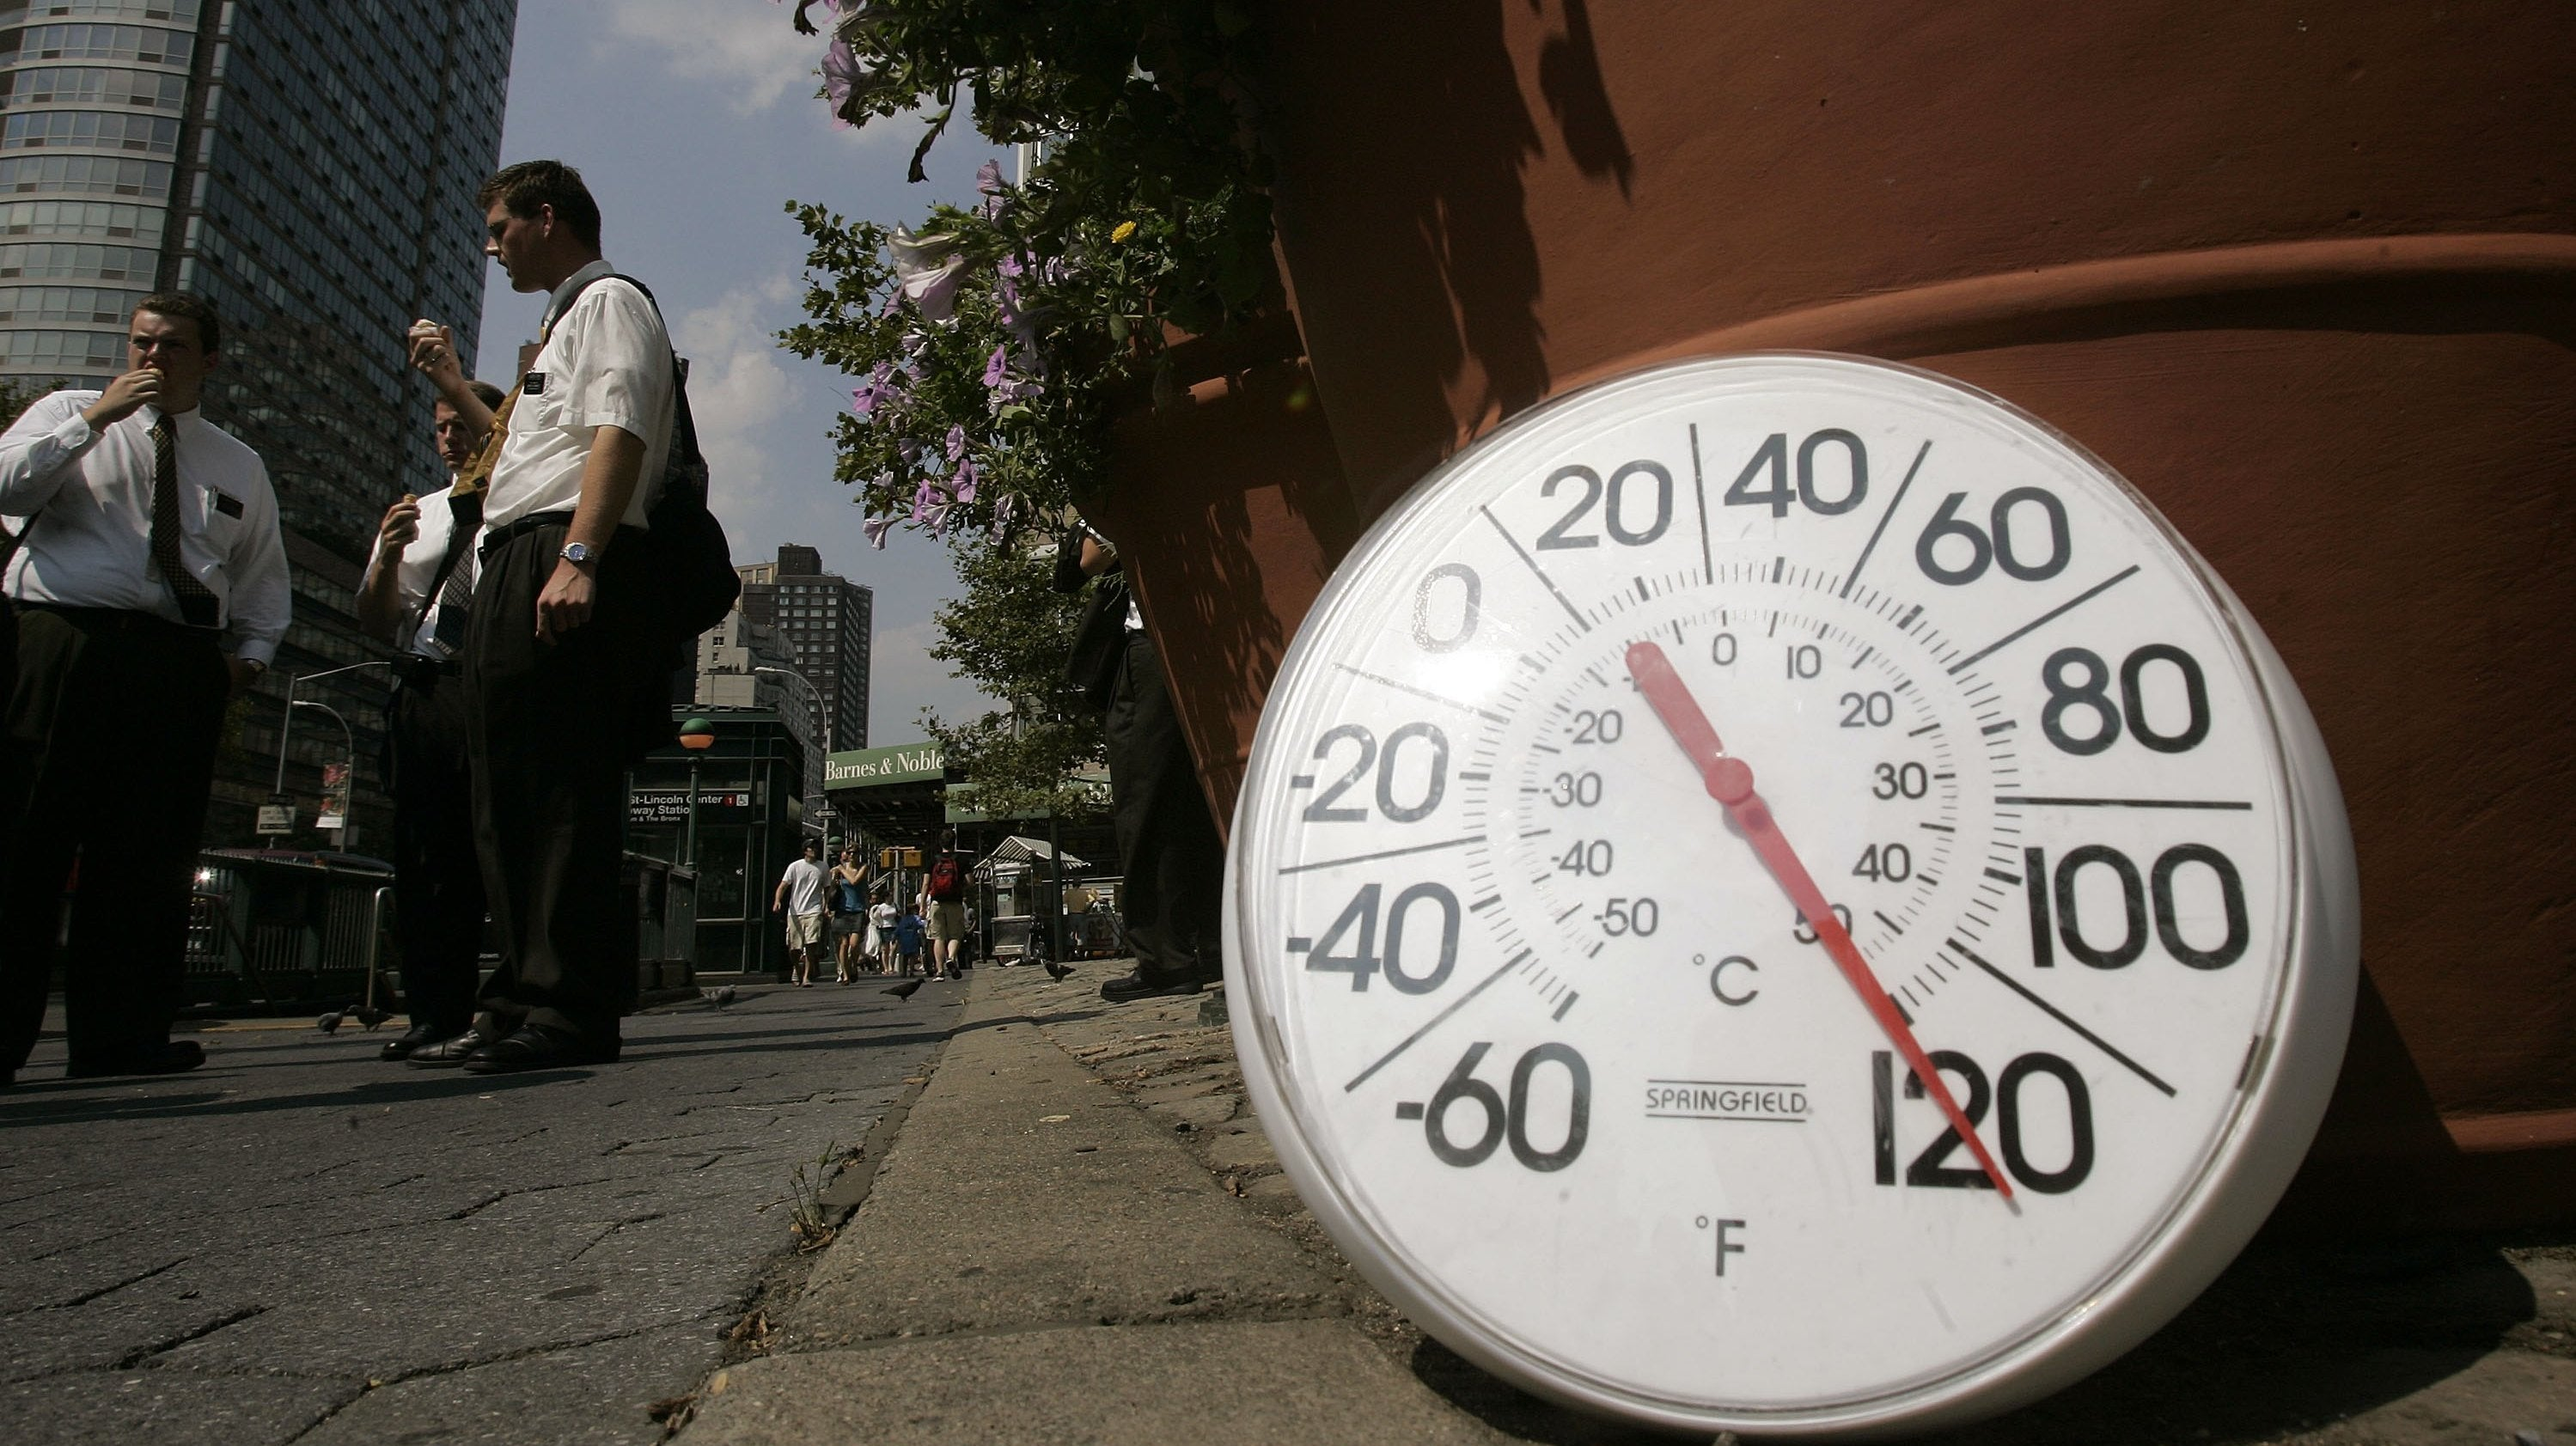 By The End Of The Century, San Francisco's Climate Could Feel Like LA